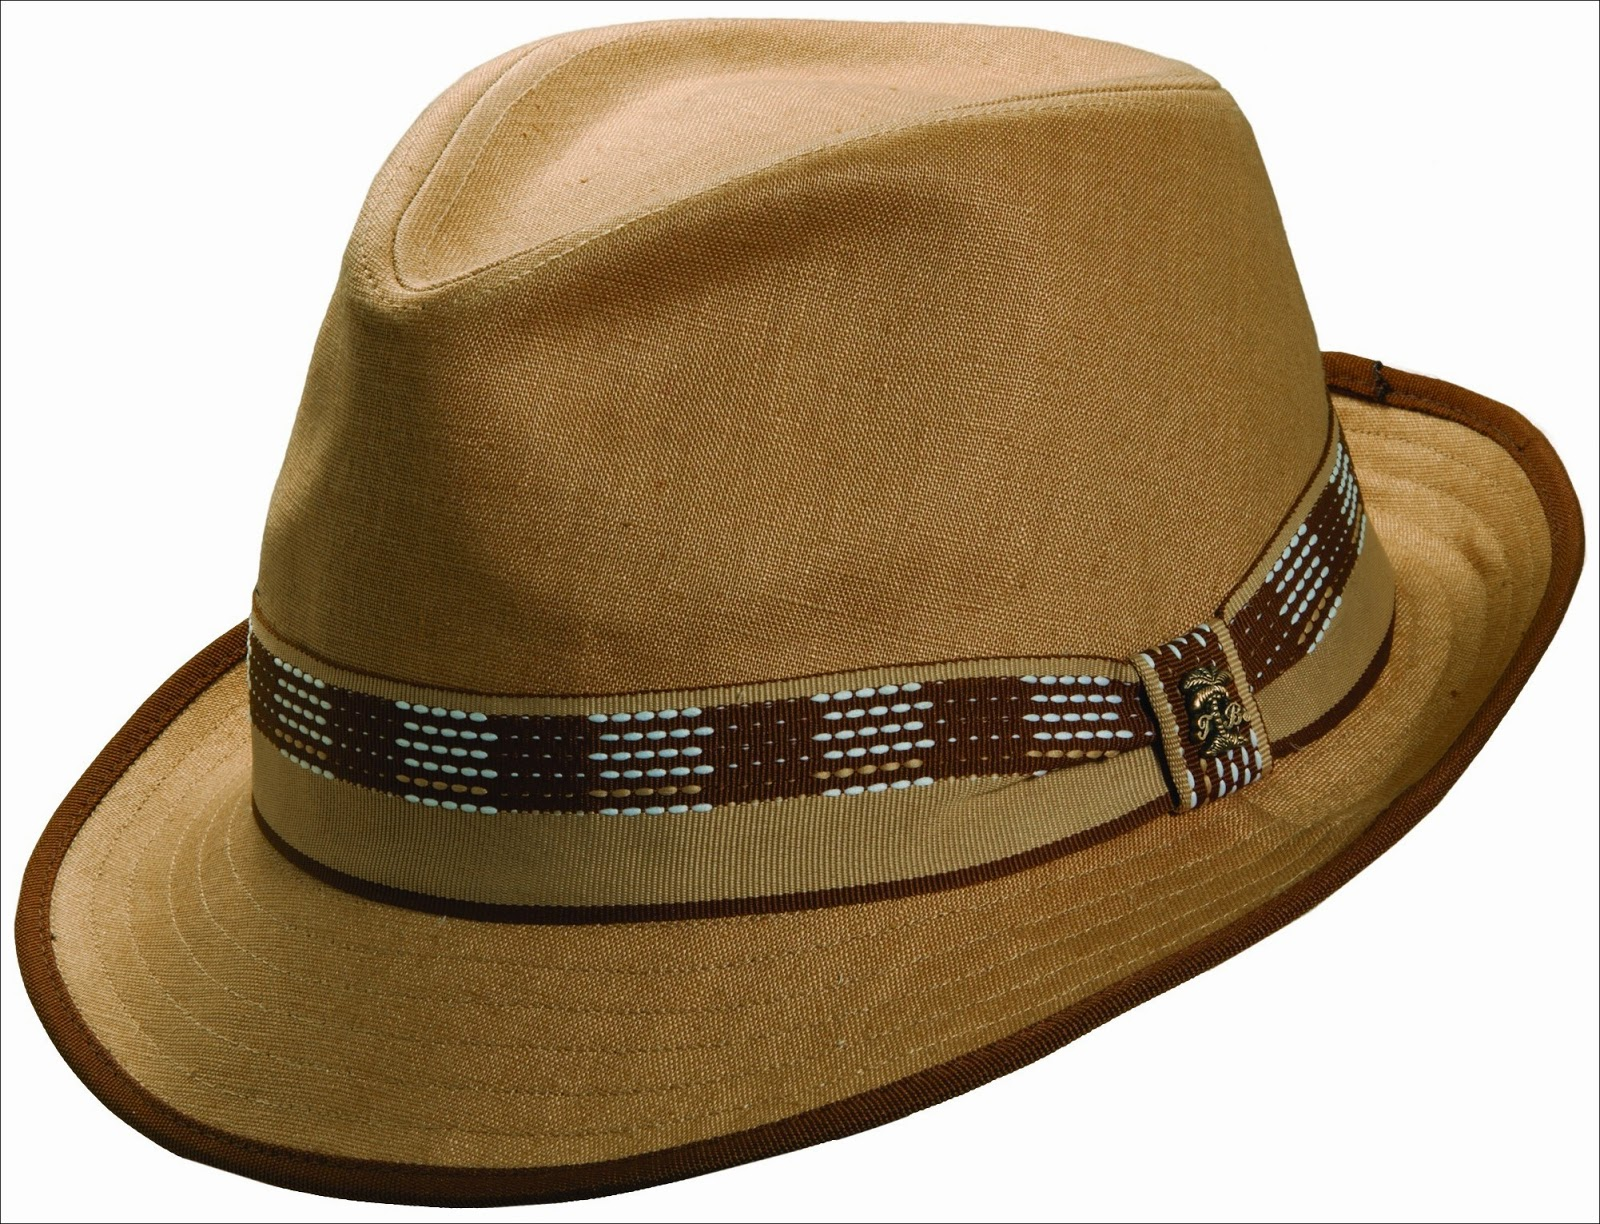 Fedora Men's Hats: Shop our collection to find the right style for you from 0549sahibi.tk Your Online Hats Store! Get 5% in rewards with Club O!